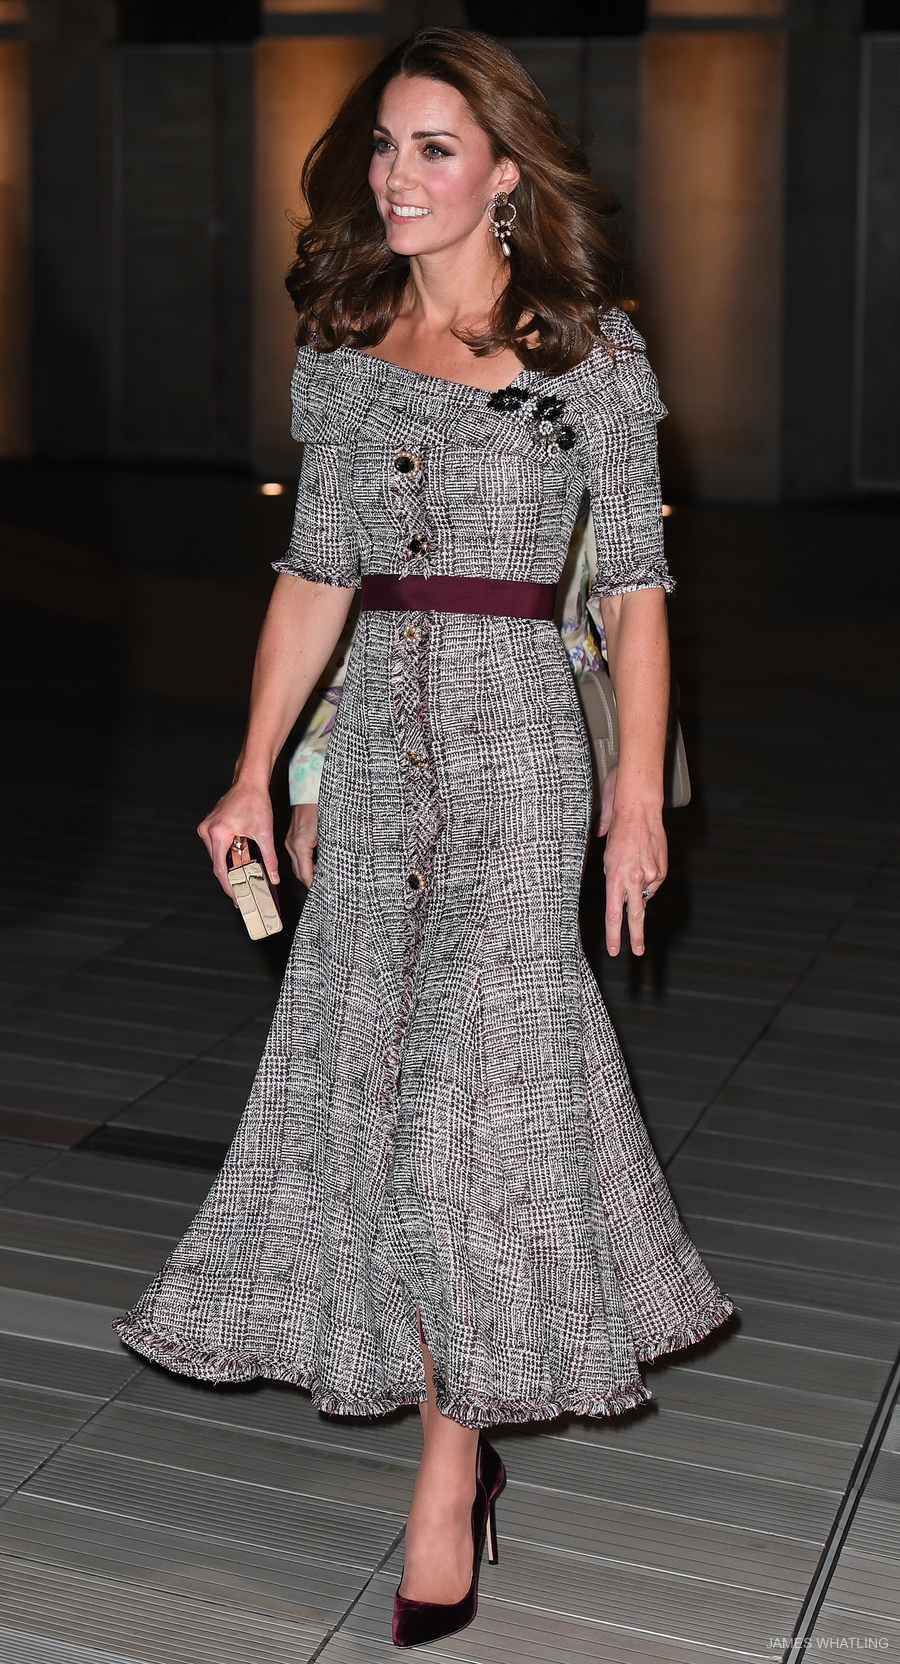 Kate Middleton wears Erdem for V&A Museum visit